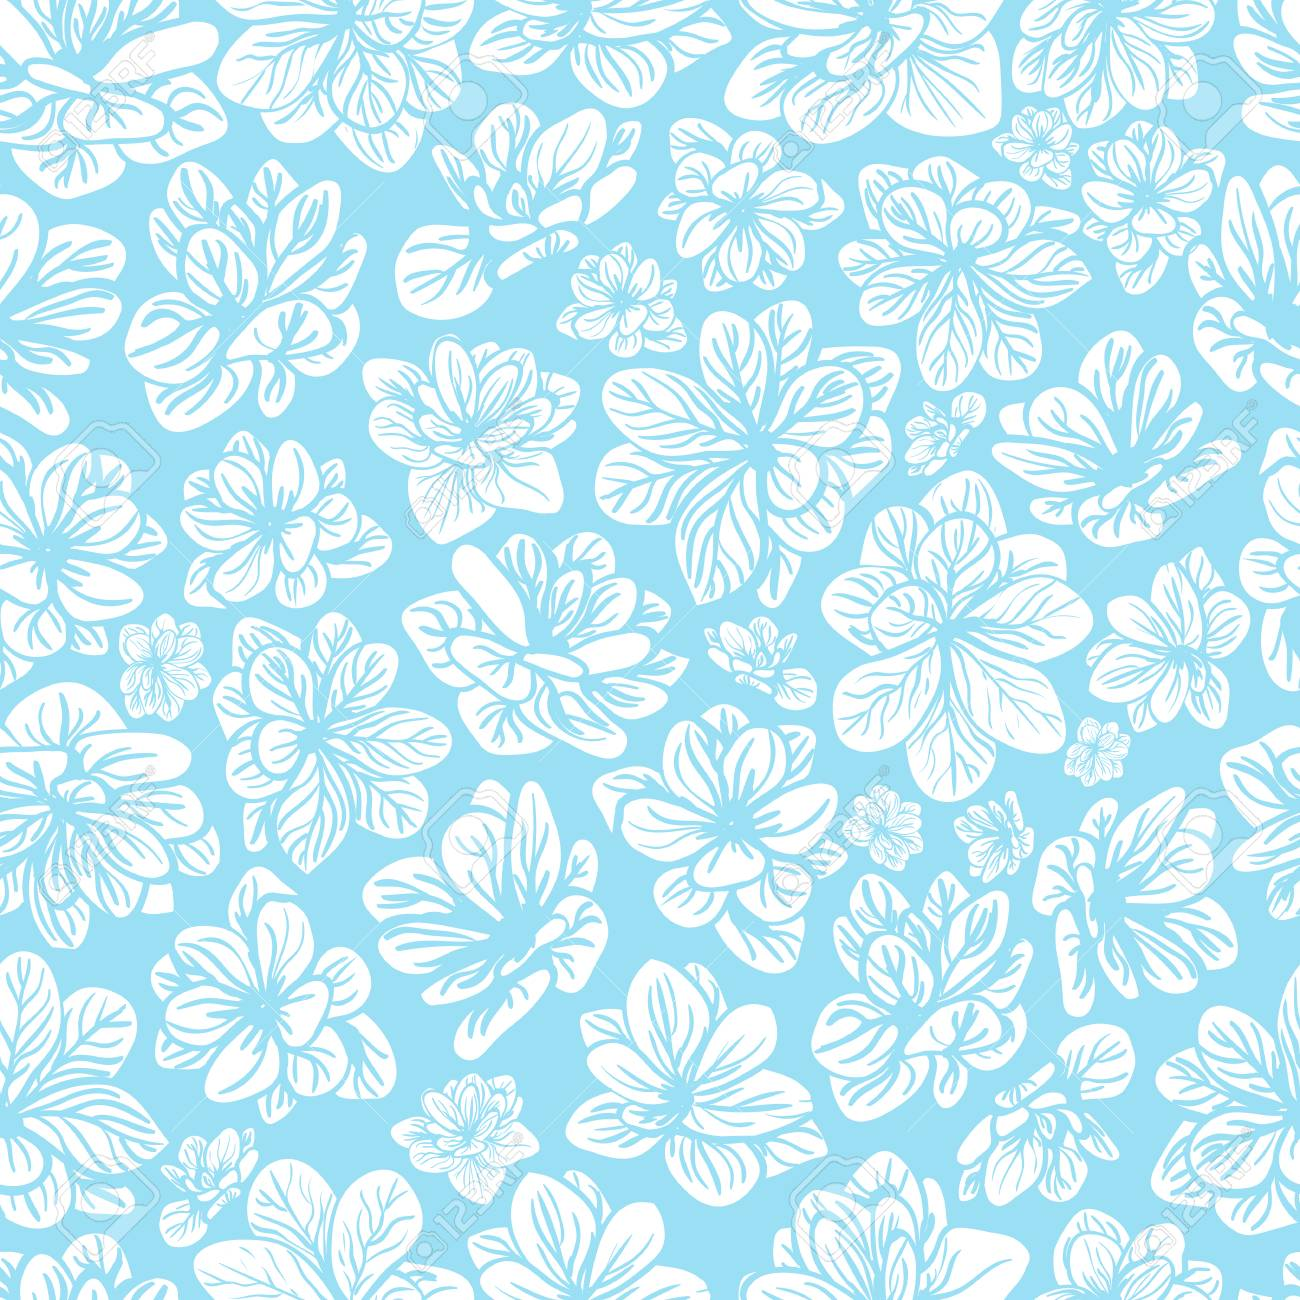 Floral background with blue flowers seamless pattern royalty free floral background with blue flowers seamless pattern stock vector 54501535 izmirmasajfo